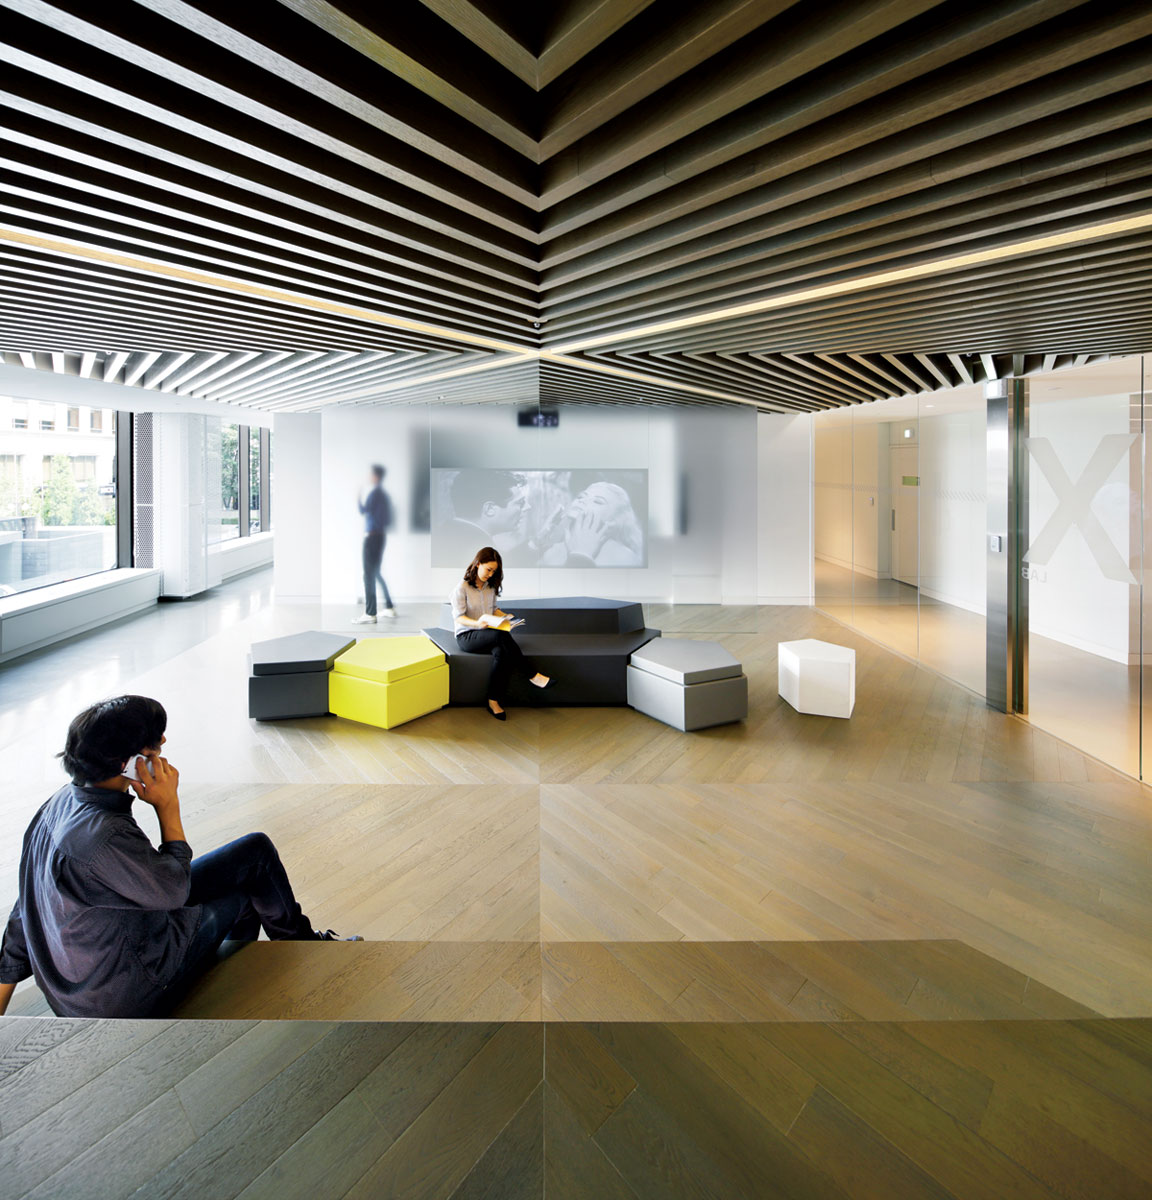 Top 90 Healthcare Architecture Firms Building Design: One Firm Masterminds 5 Projects For Hyundai